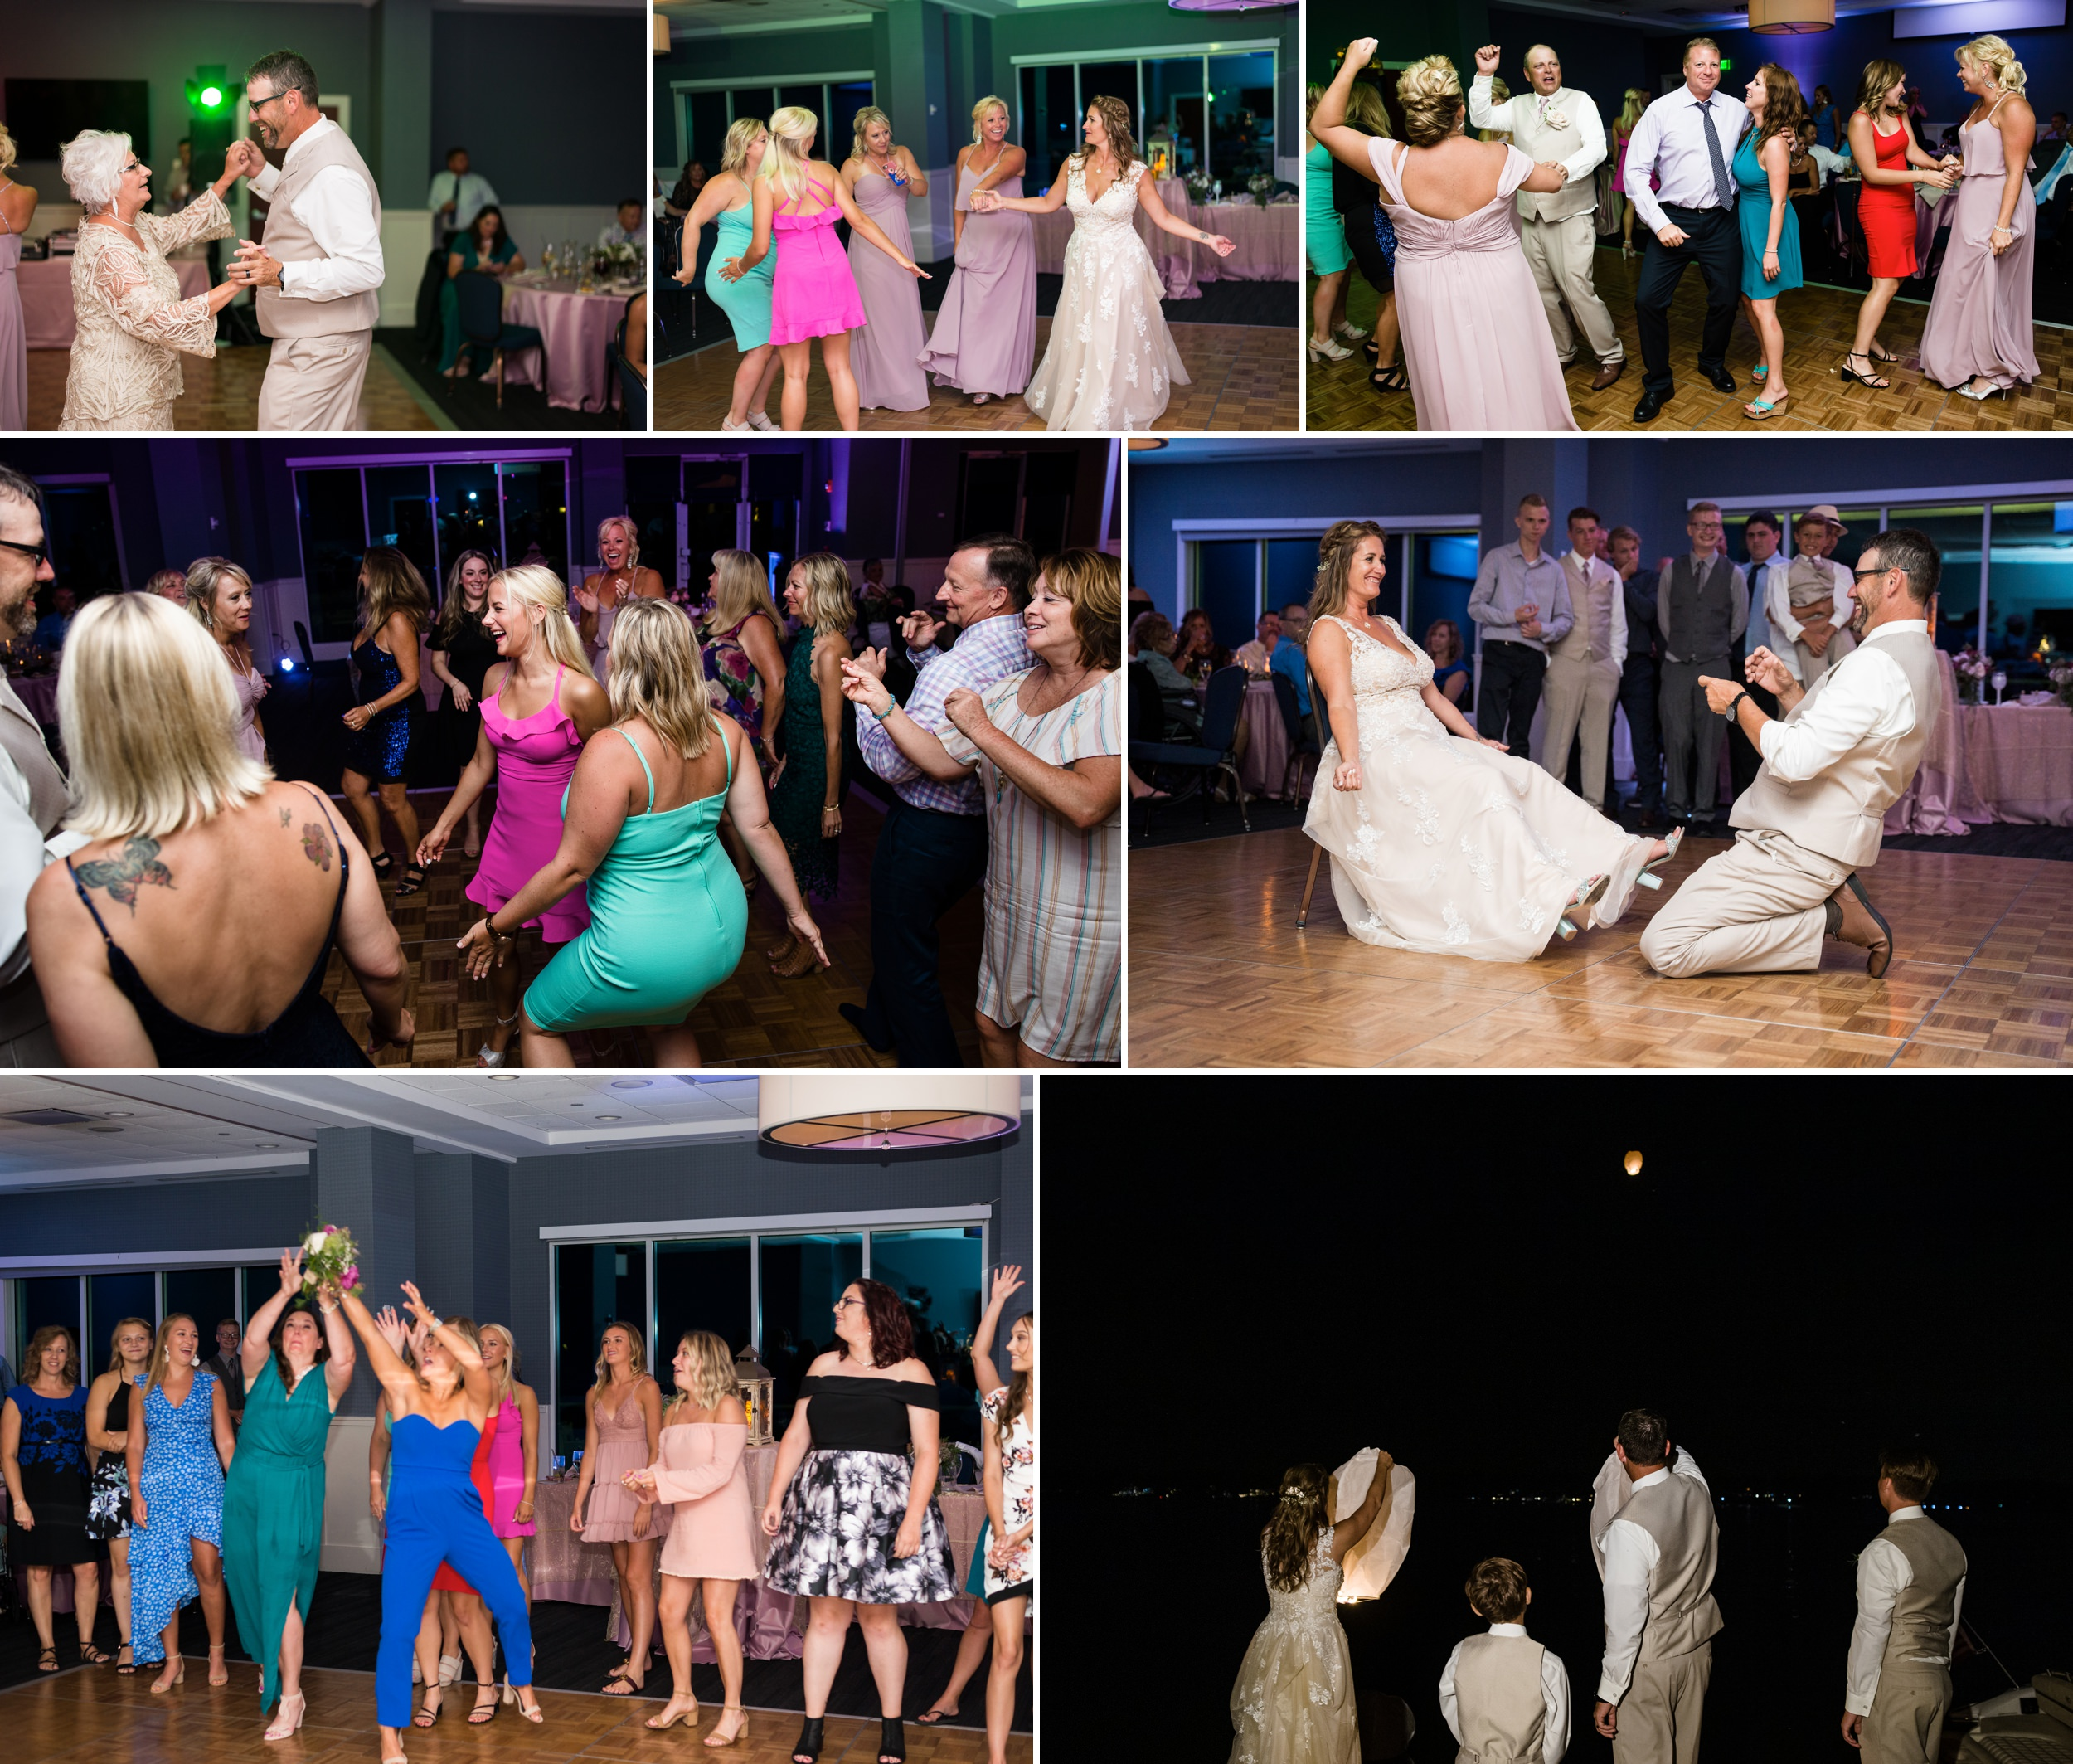 Dance floor fun at Lighthouse Restaurant during a summer wedding reception.